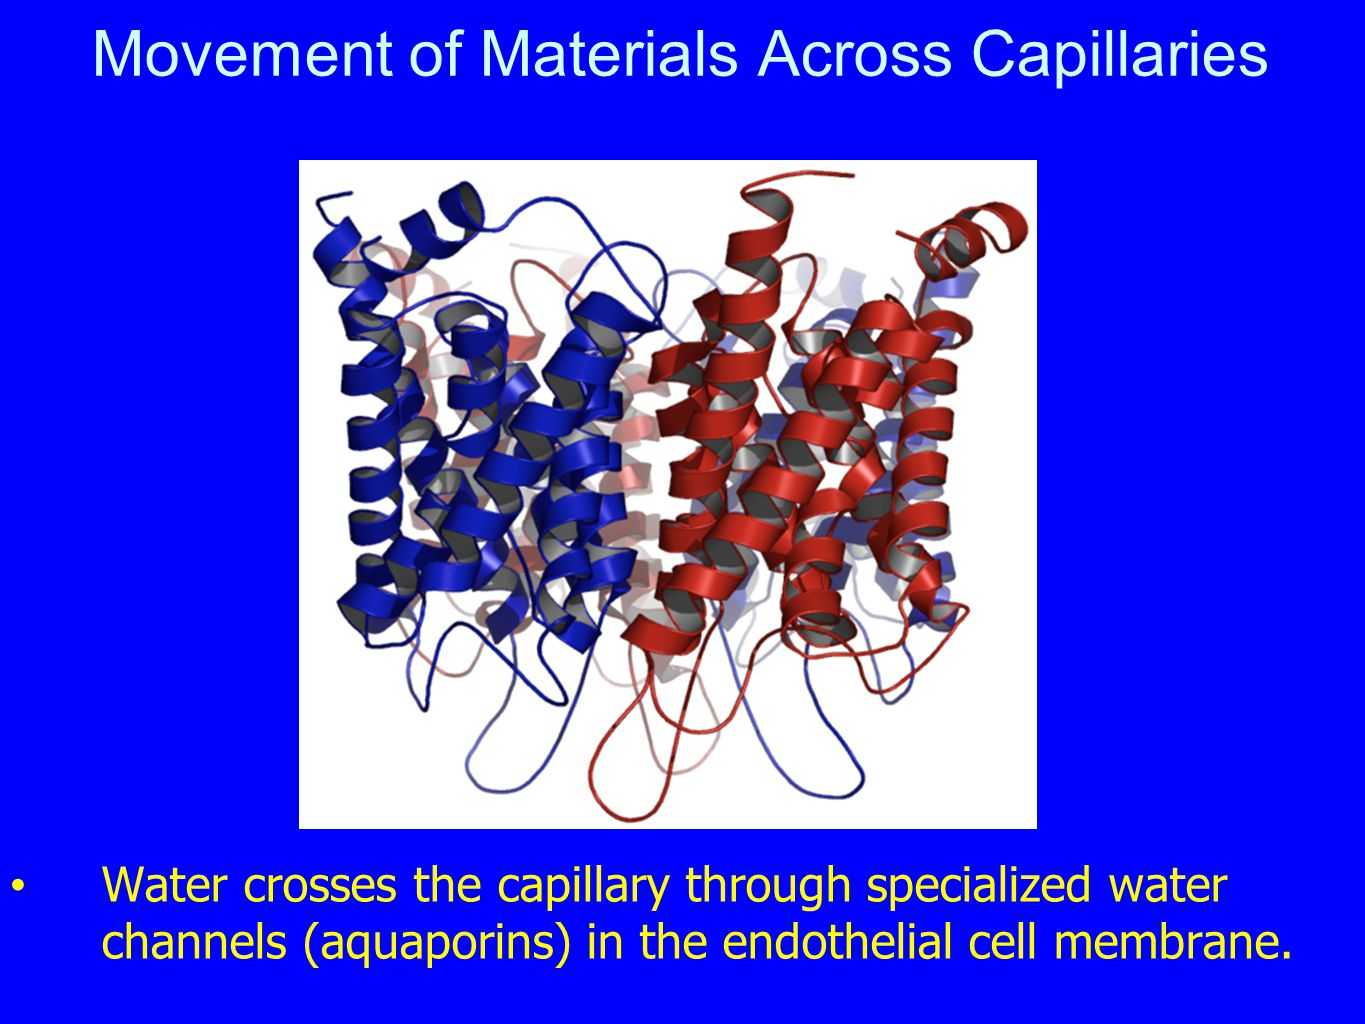 Movement of Materials Across Capillaries Water crosses the capillary through specialized water channels (aquaporins) in the endothelial cell membrane.